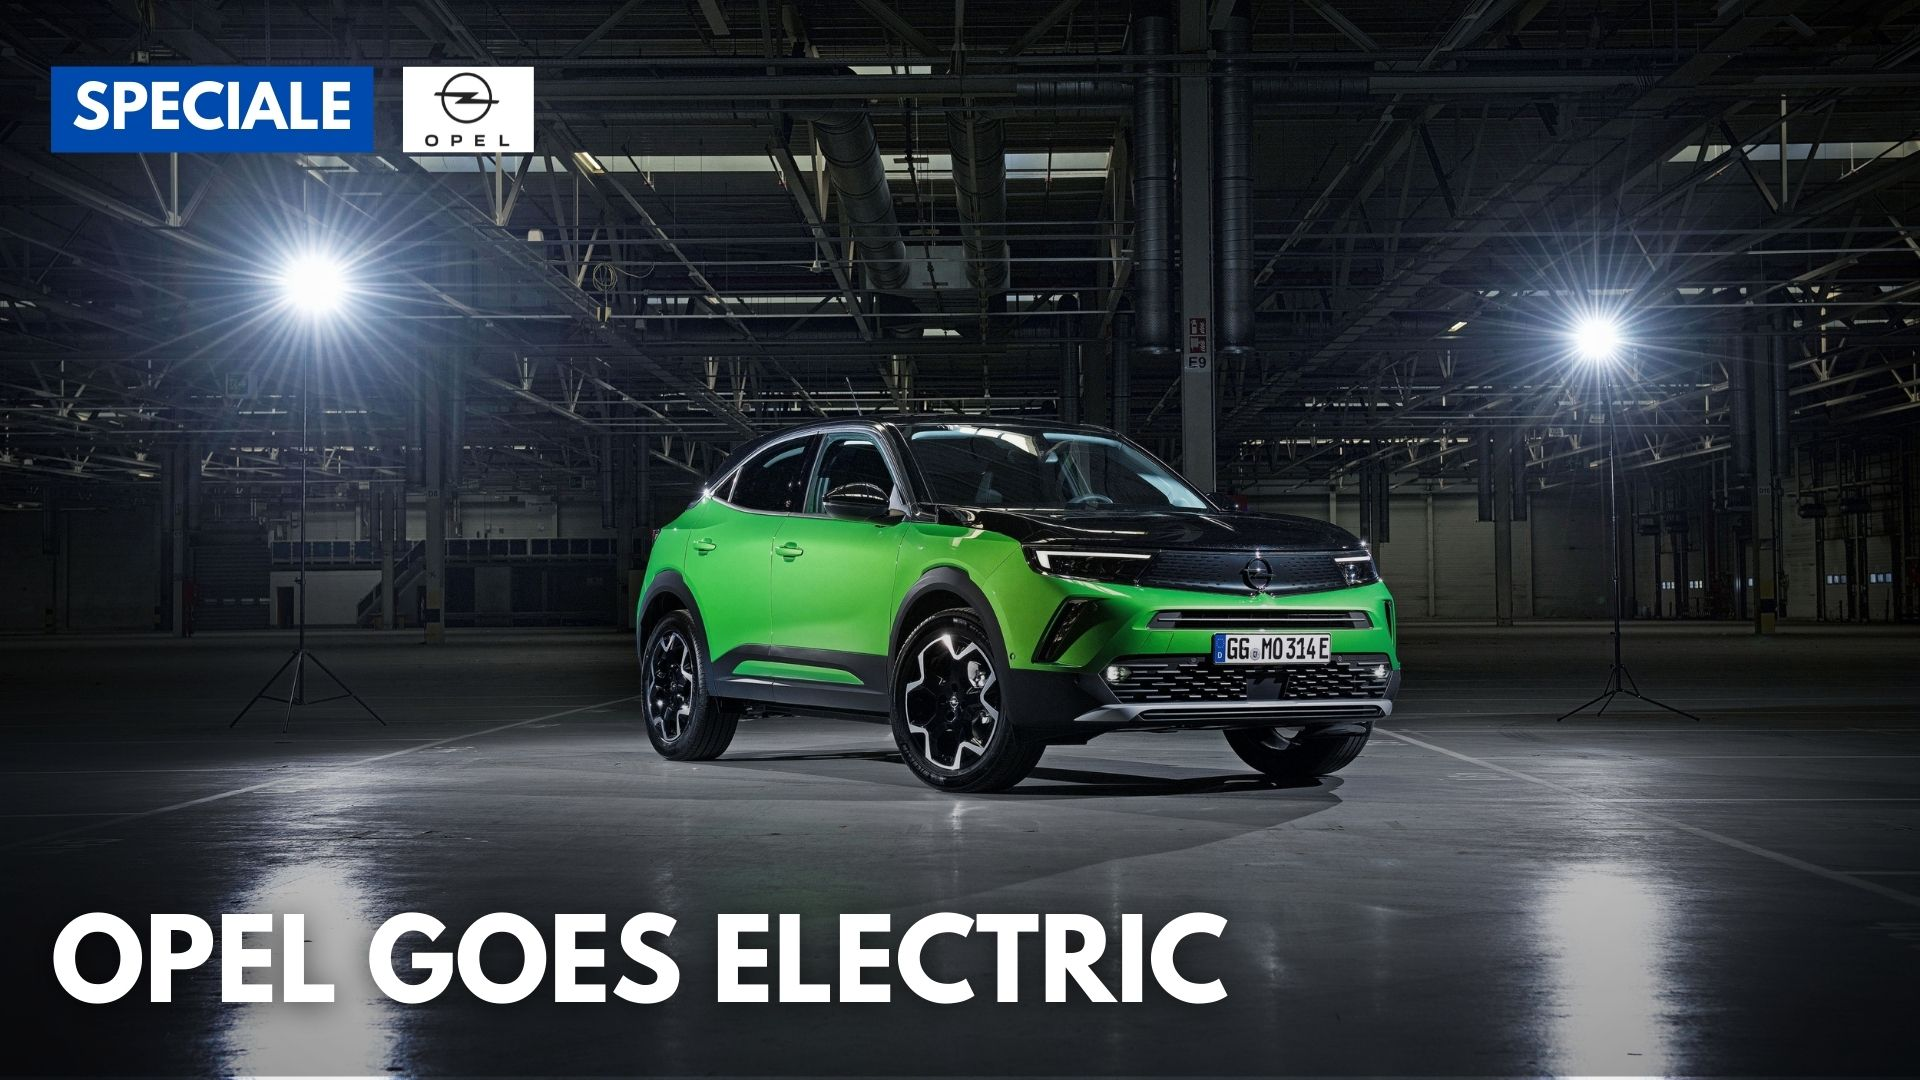 opel-goes-electric-cover